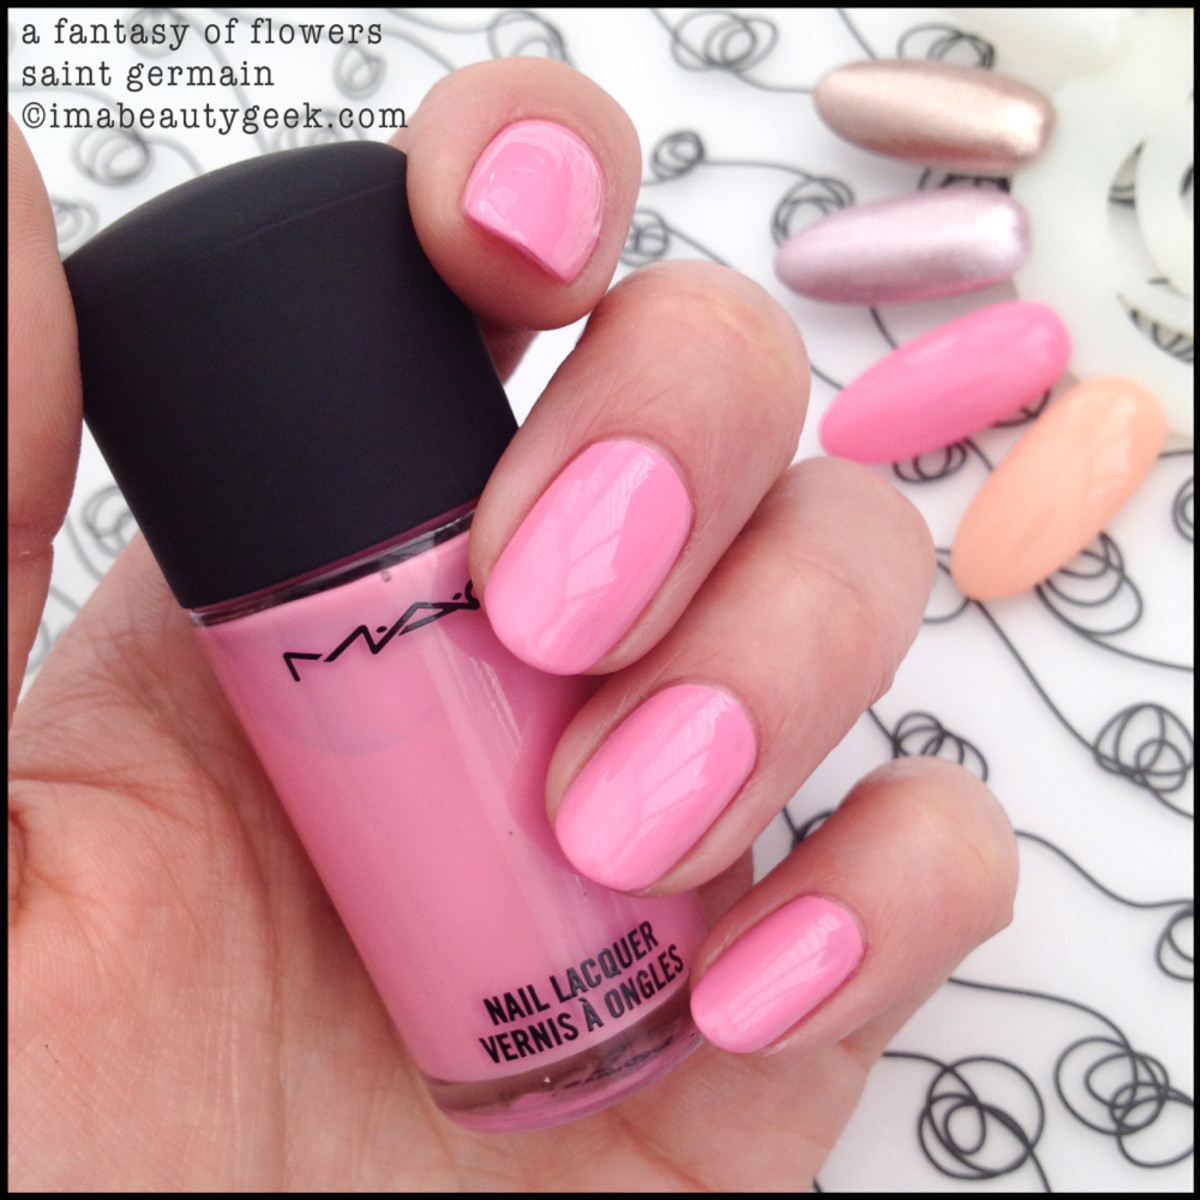 MAC Saint Germain_MAC Fantasy of Flowers